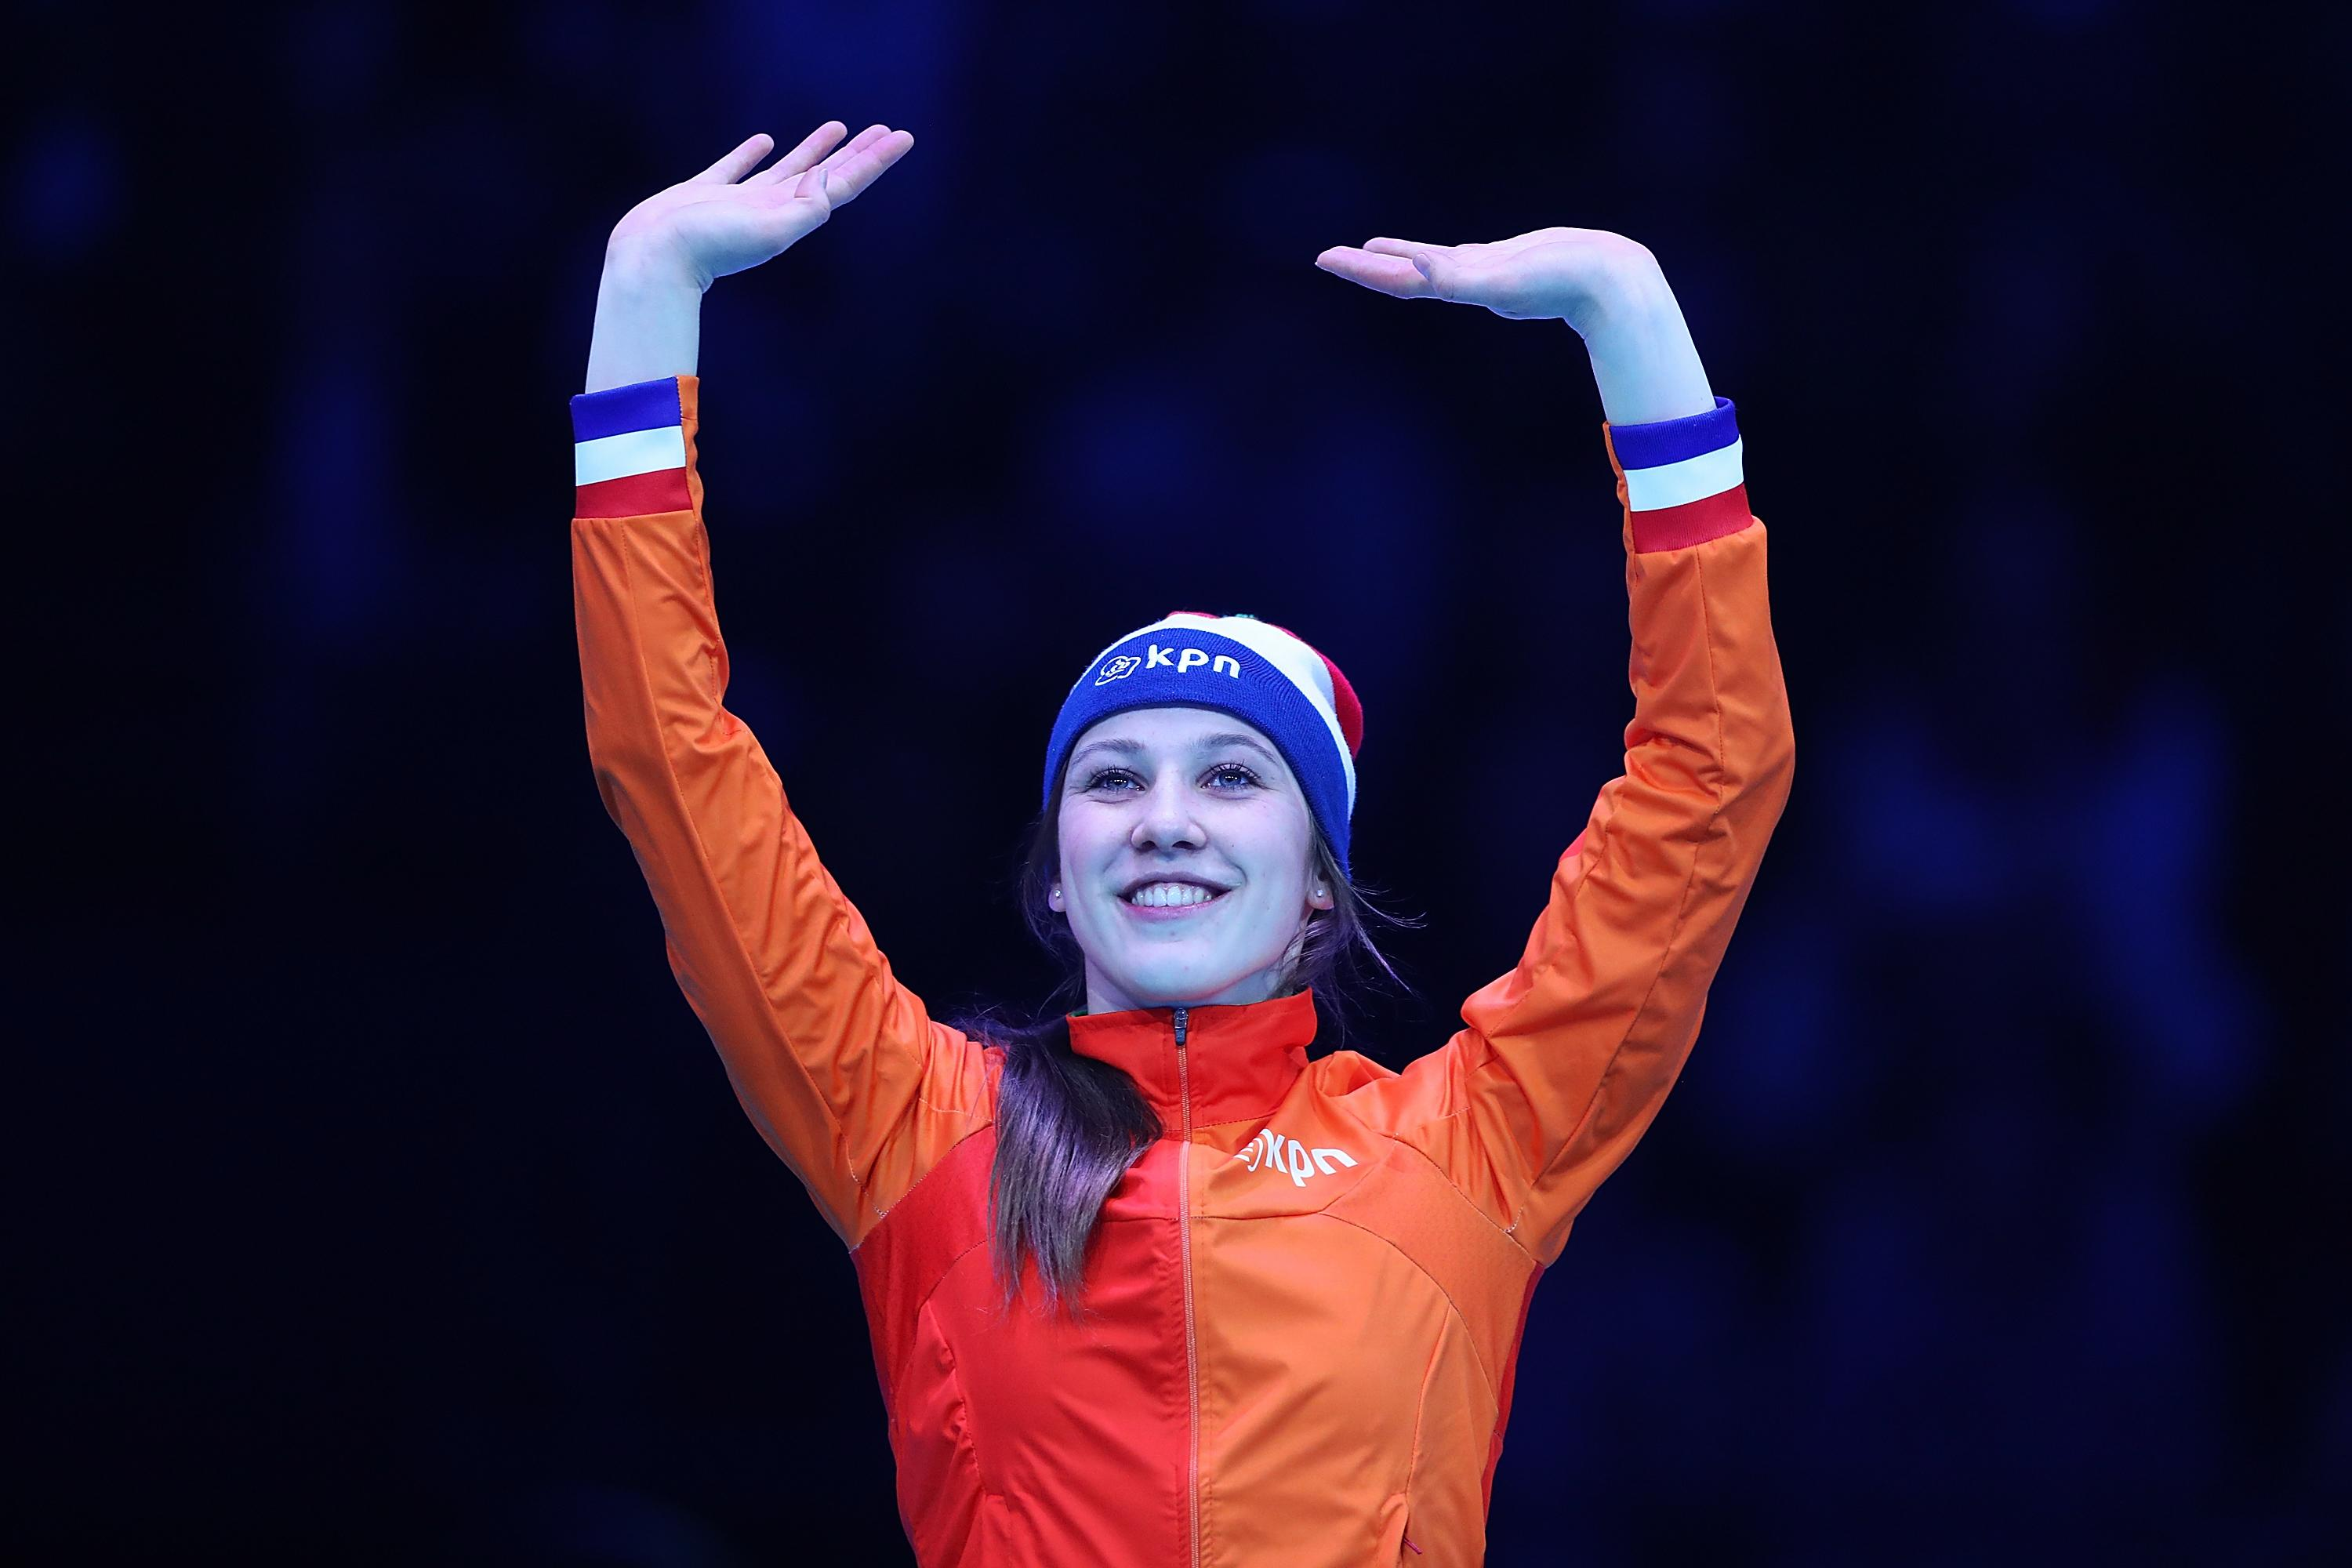 Olympic crush: Dutch speed skater Suzanne Schulting